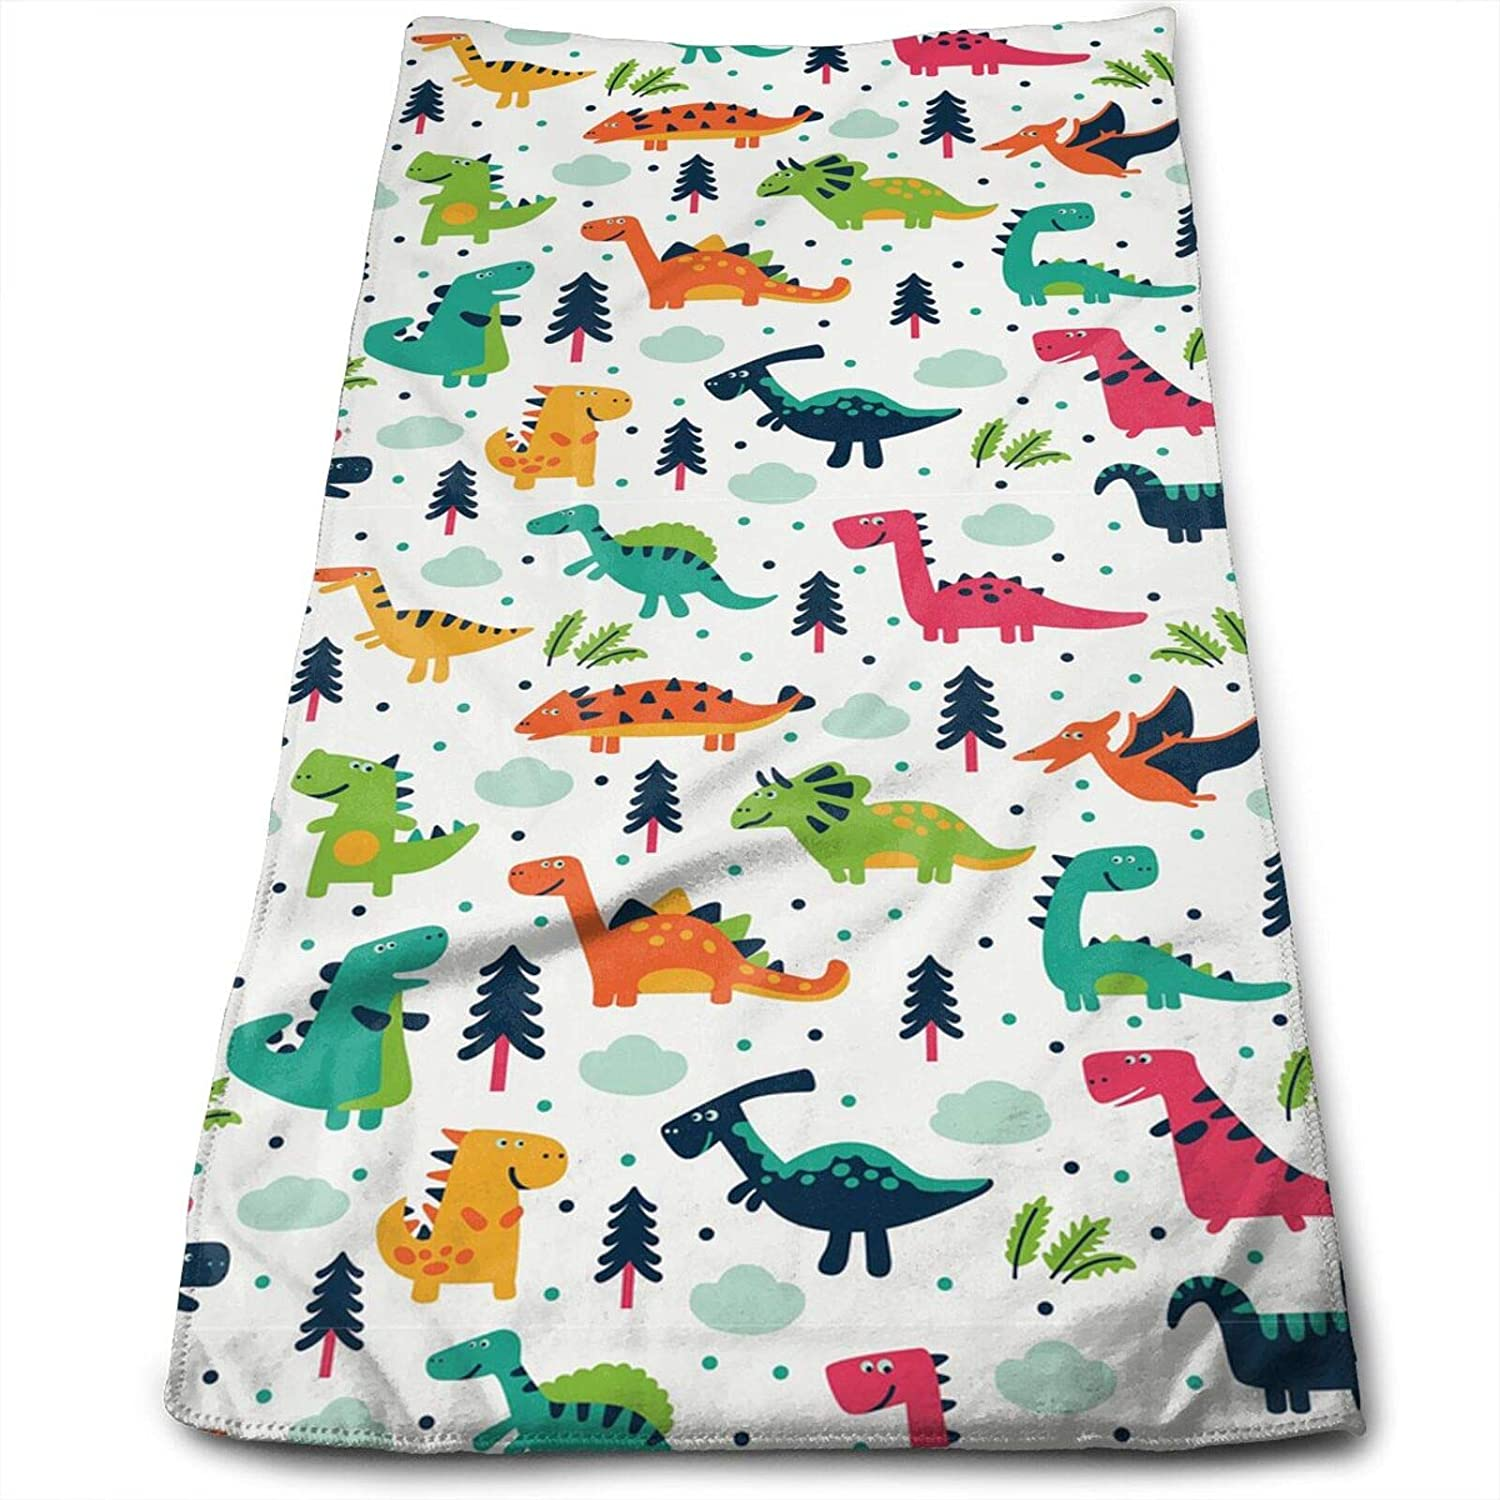 MSGUIDE Cute Dinosaur Forest Dino Dragon Hand Towels for Bathroom Clearance Decor Face Towels Microfiber Towels Soft Fingertip Towel for Gym Yoga Spa Pool Sport Hotel